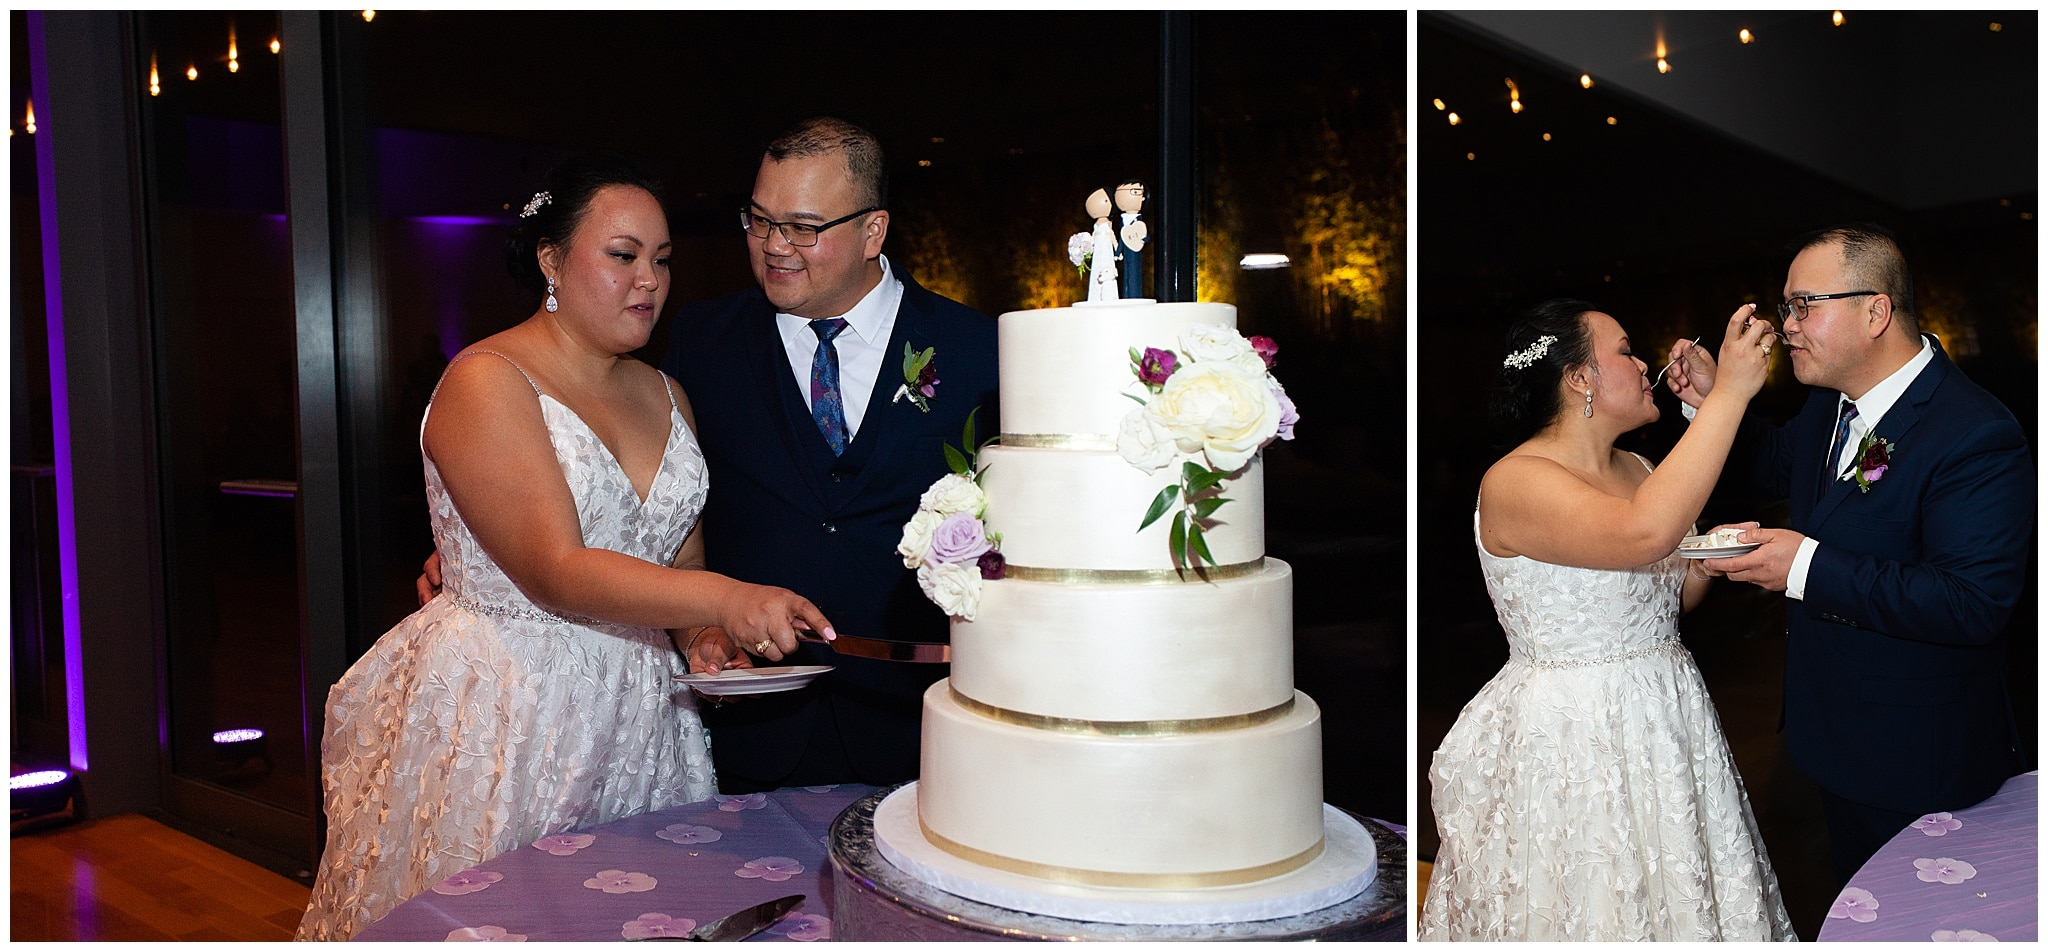 cake cutting by bride and groom at the Asia Society in Houston TX by Swish and Click Photography